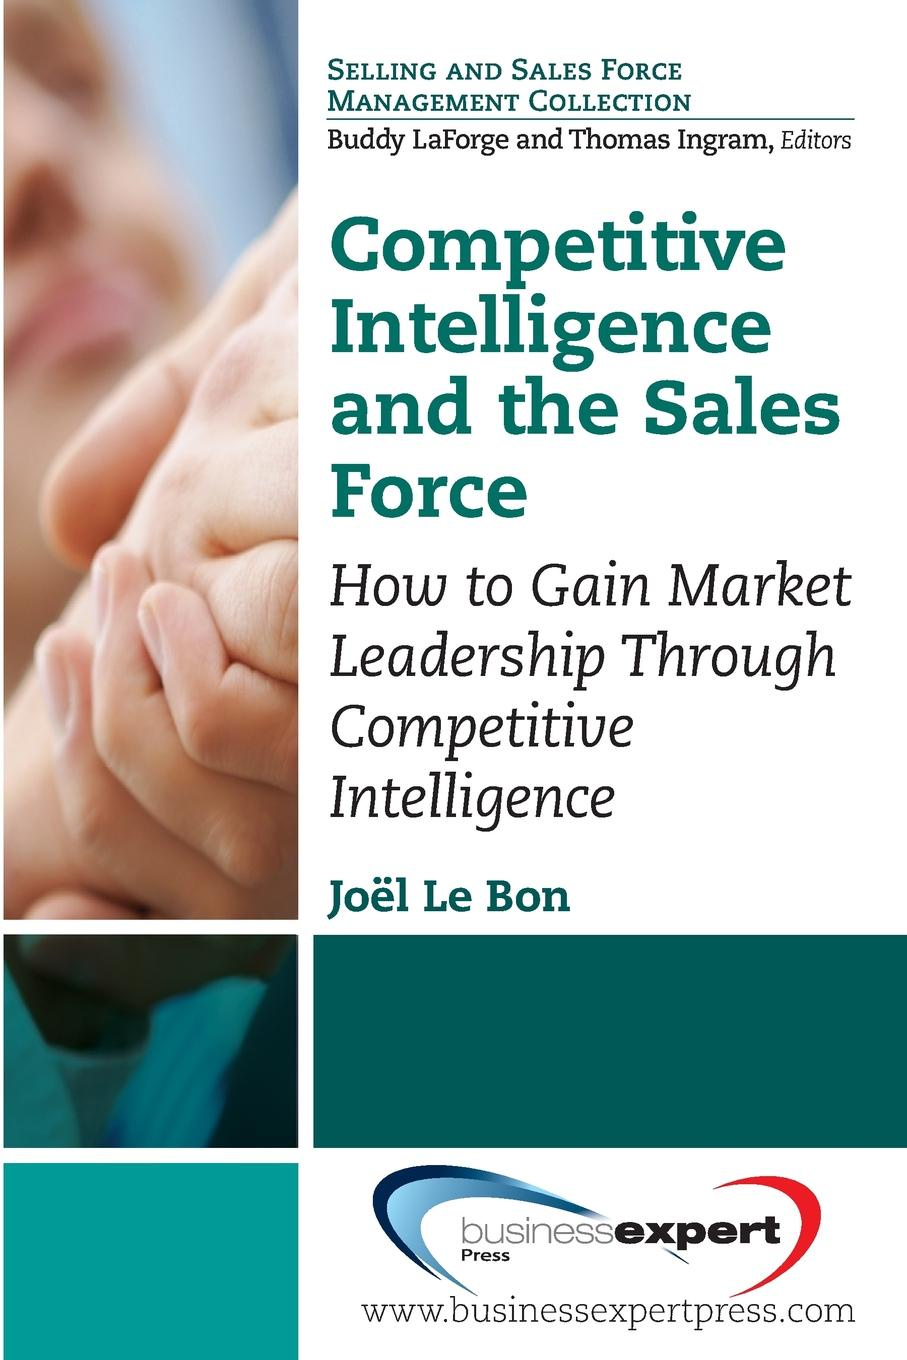 Joel Le Bon Competitive Intelligence and the Sales Force. How to Gain Market Leadership Through Competitive Intelligence amy lyman the trustworthy leader leveraging the power of trust to transform your organization